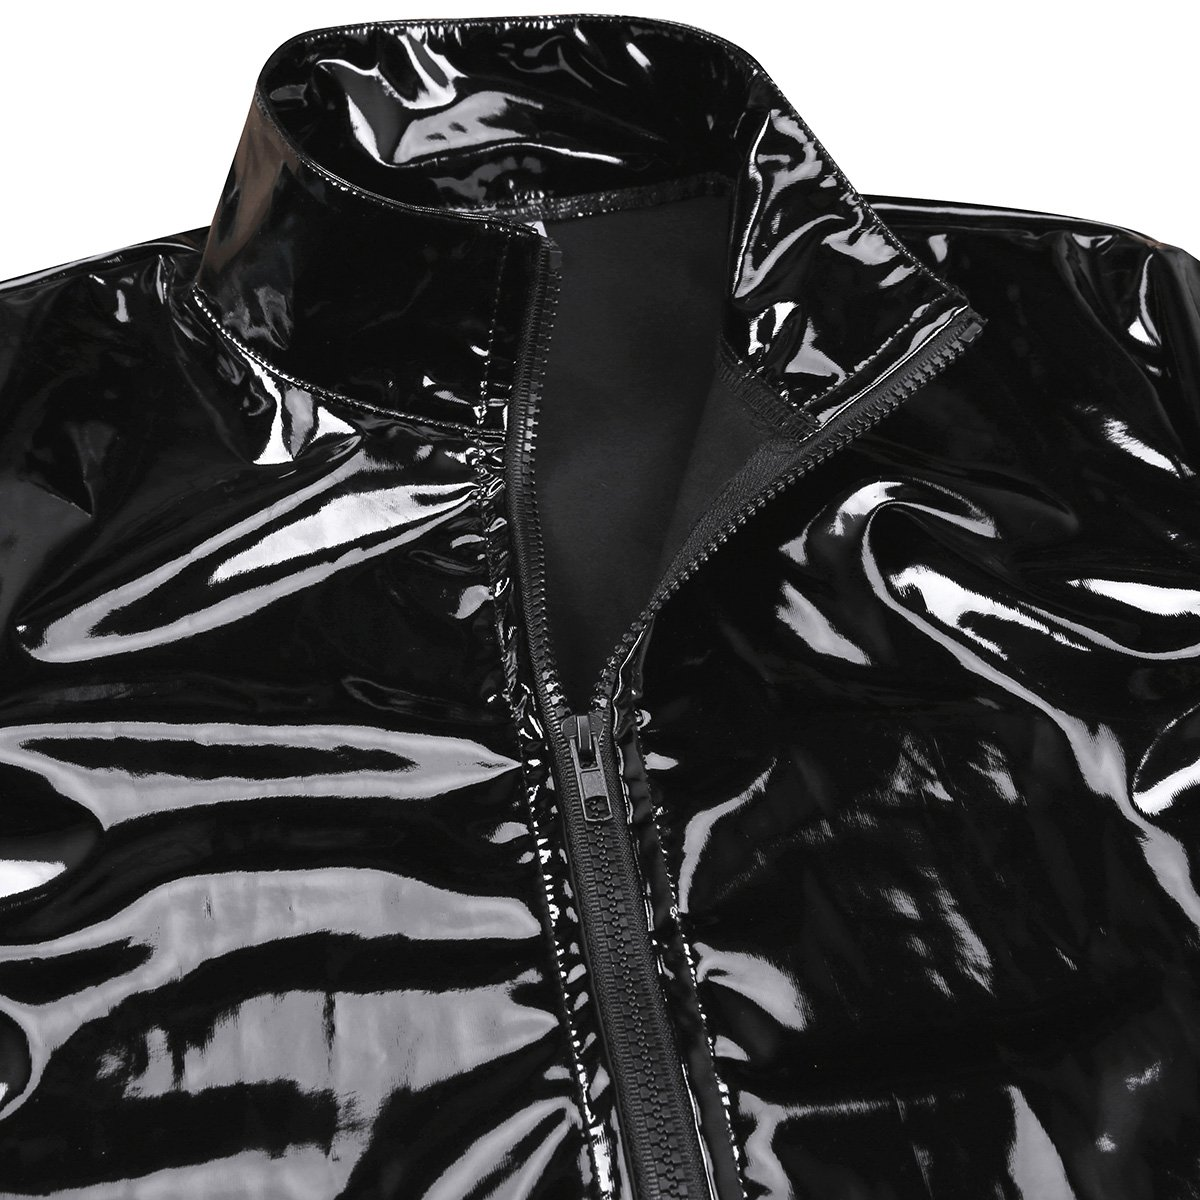 Agoky Men's Metallic Faux Leather Front-Zip Mock Neck Nightclub Style T-Shirt Top Coat Black XX-Large by Agoky (Image #6)